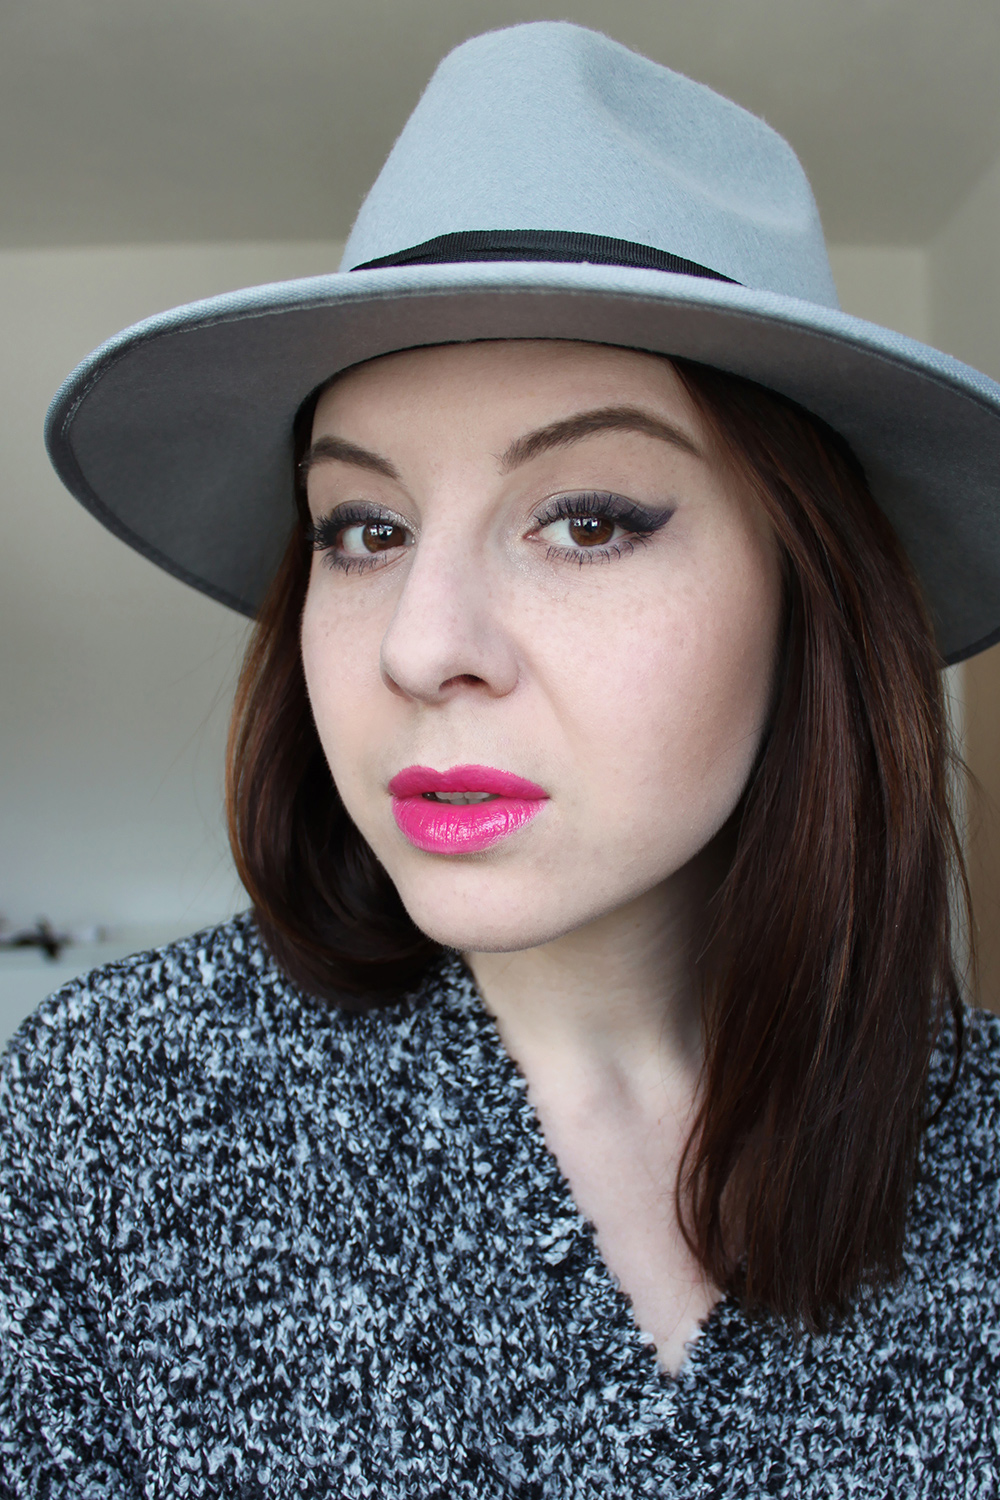 who is mocca, beautyblog, tirol, blogger, fedora, hut, boohoo, catrice, essence, makeup, amu, schminken, tutorial, face of the day, neue collection fruejahr summer 2015